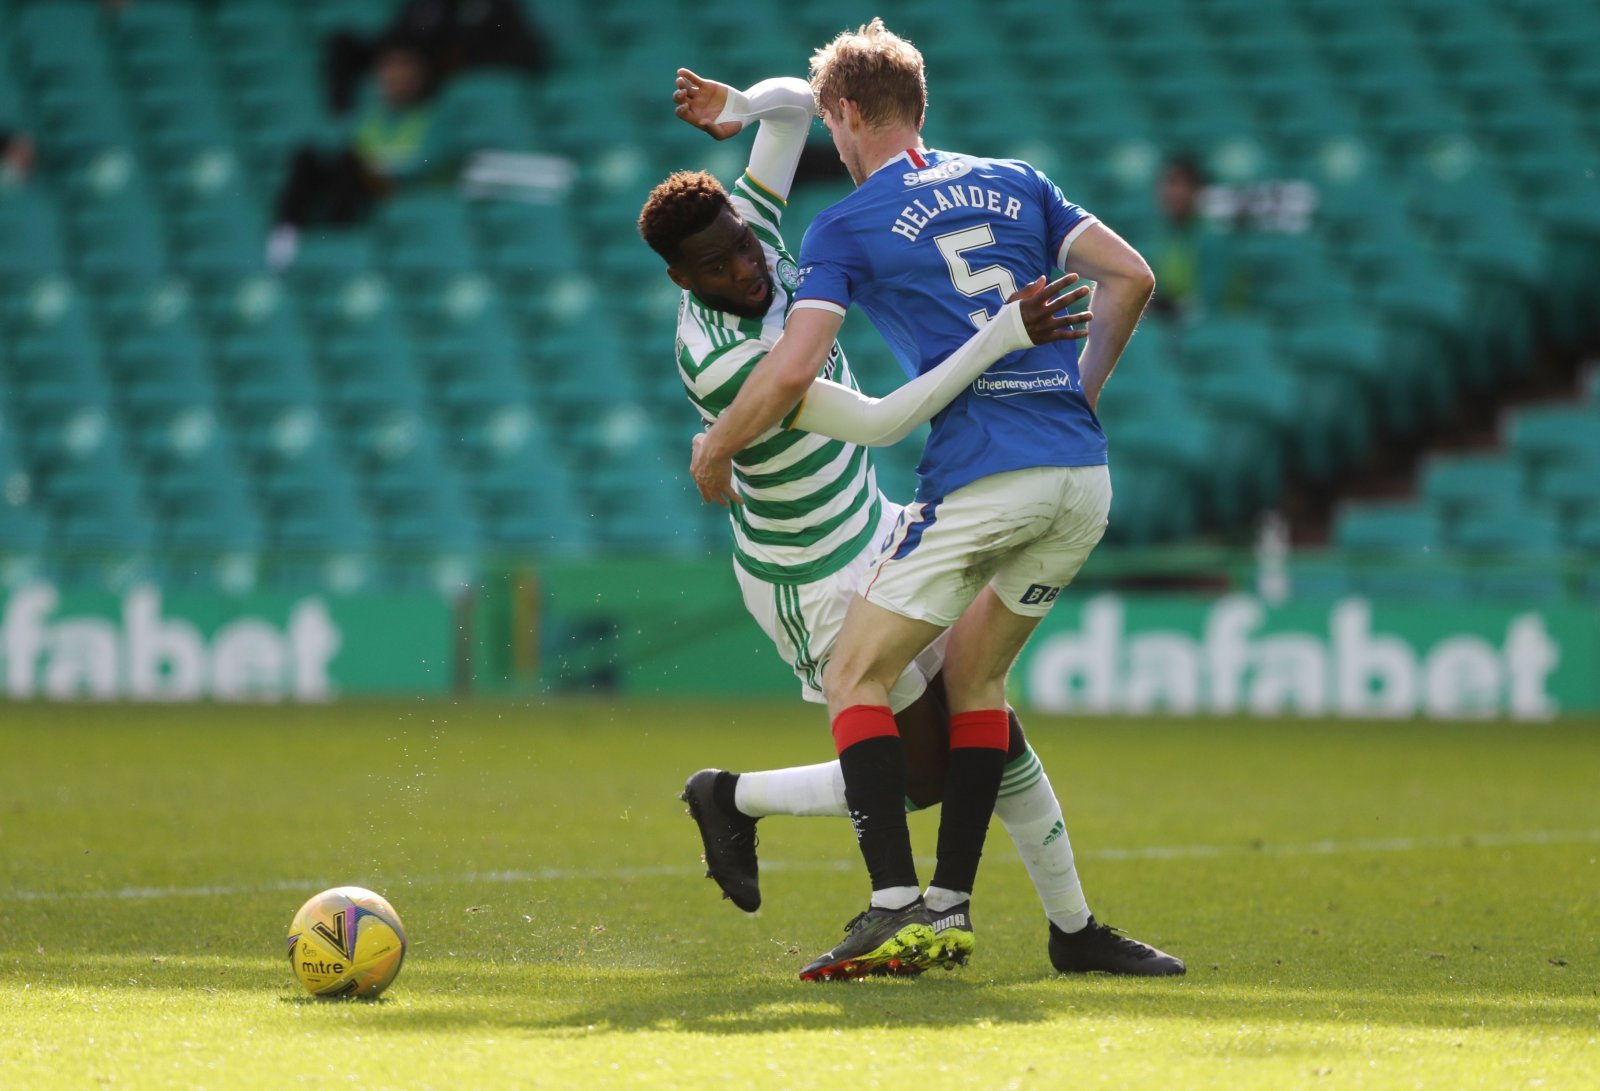 Filip-helander-battles-with-odsonne-edouard